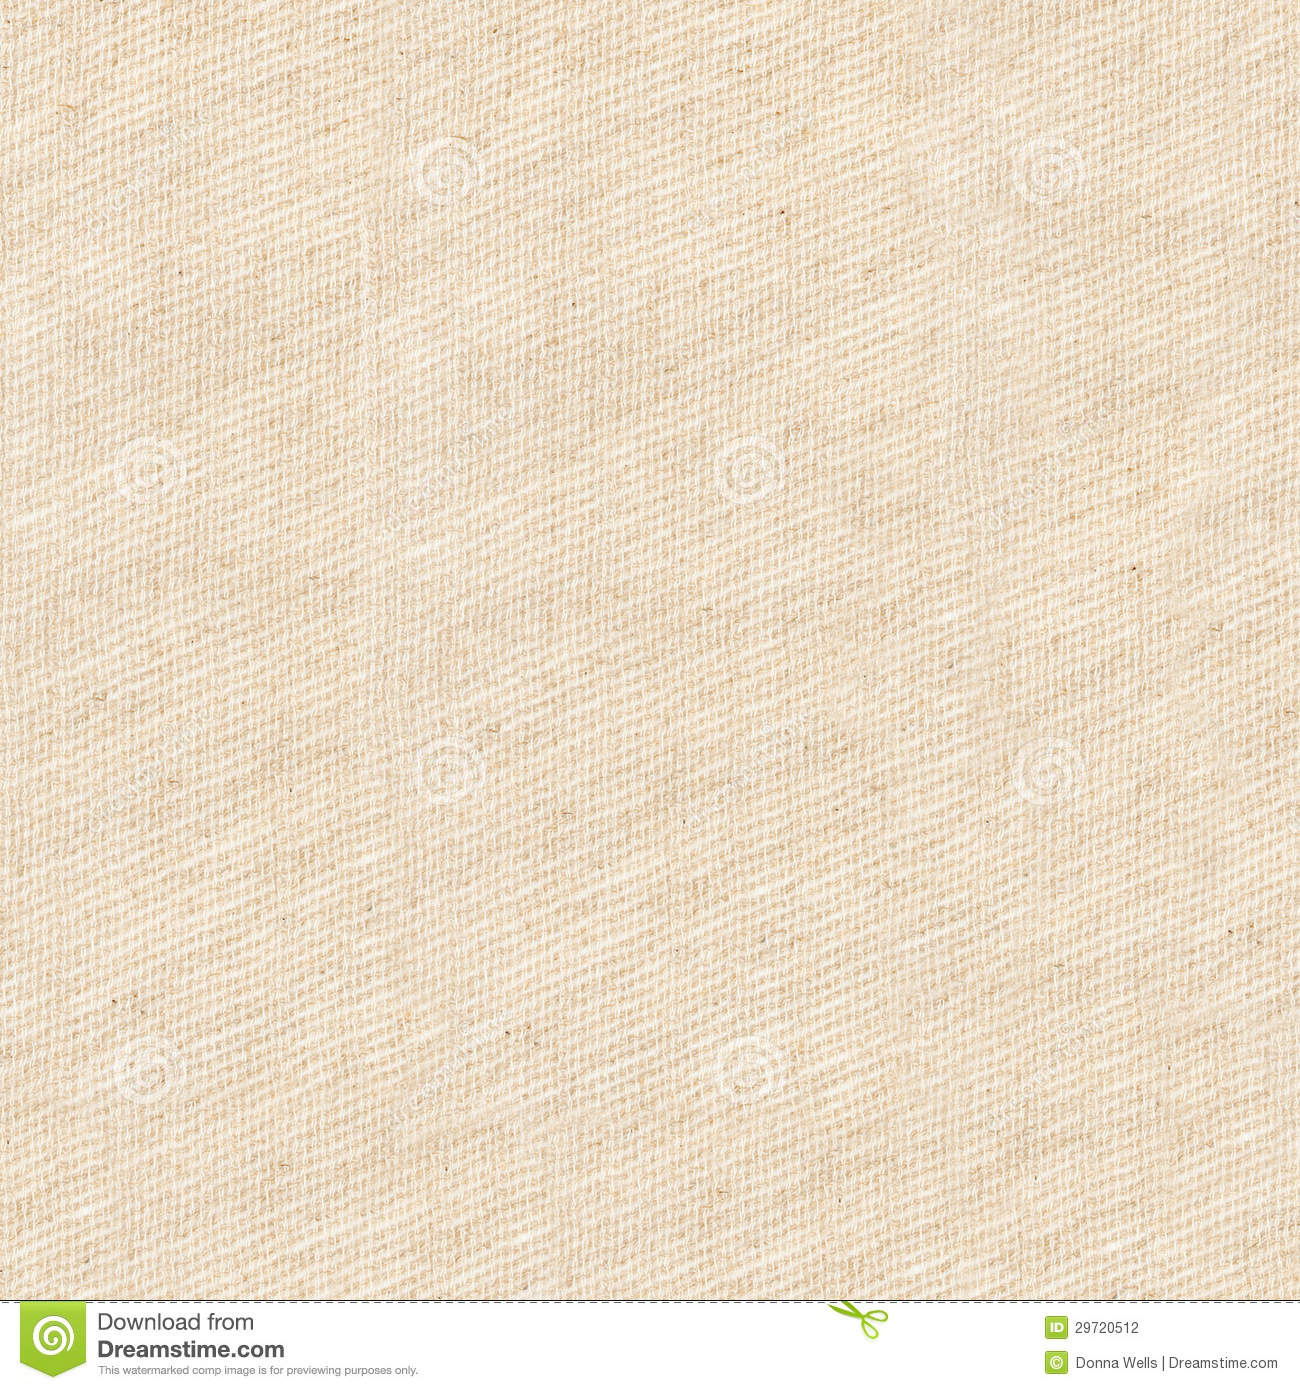 Ivory Linen Fabric Background Stock Photography - Image: 29720512